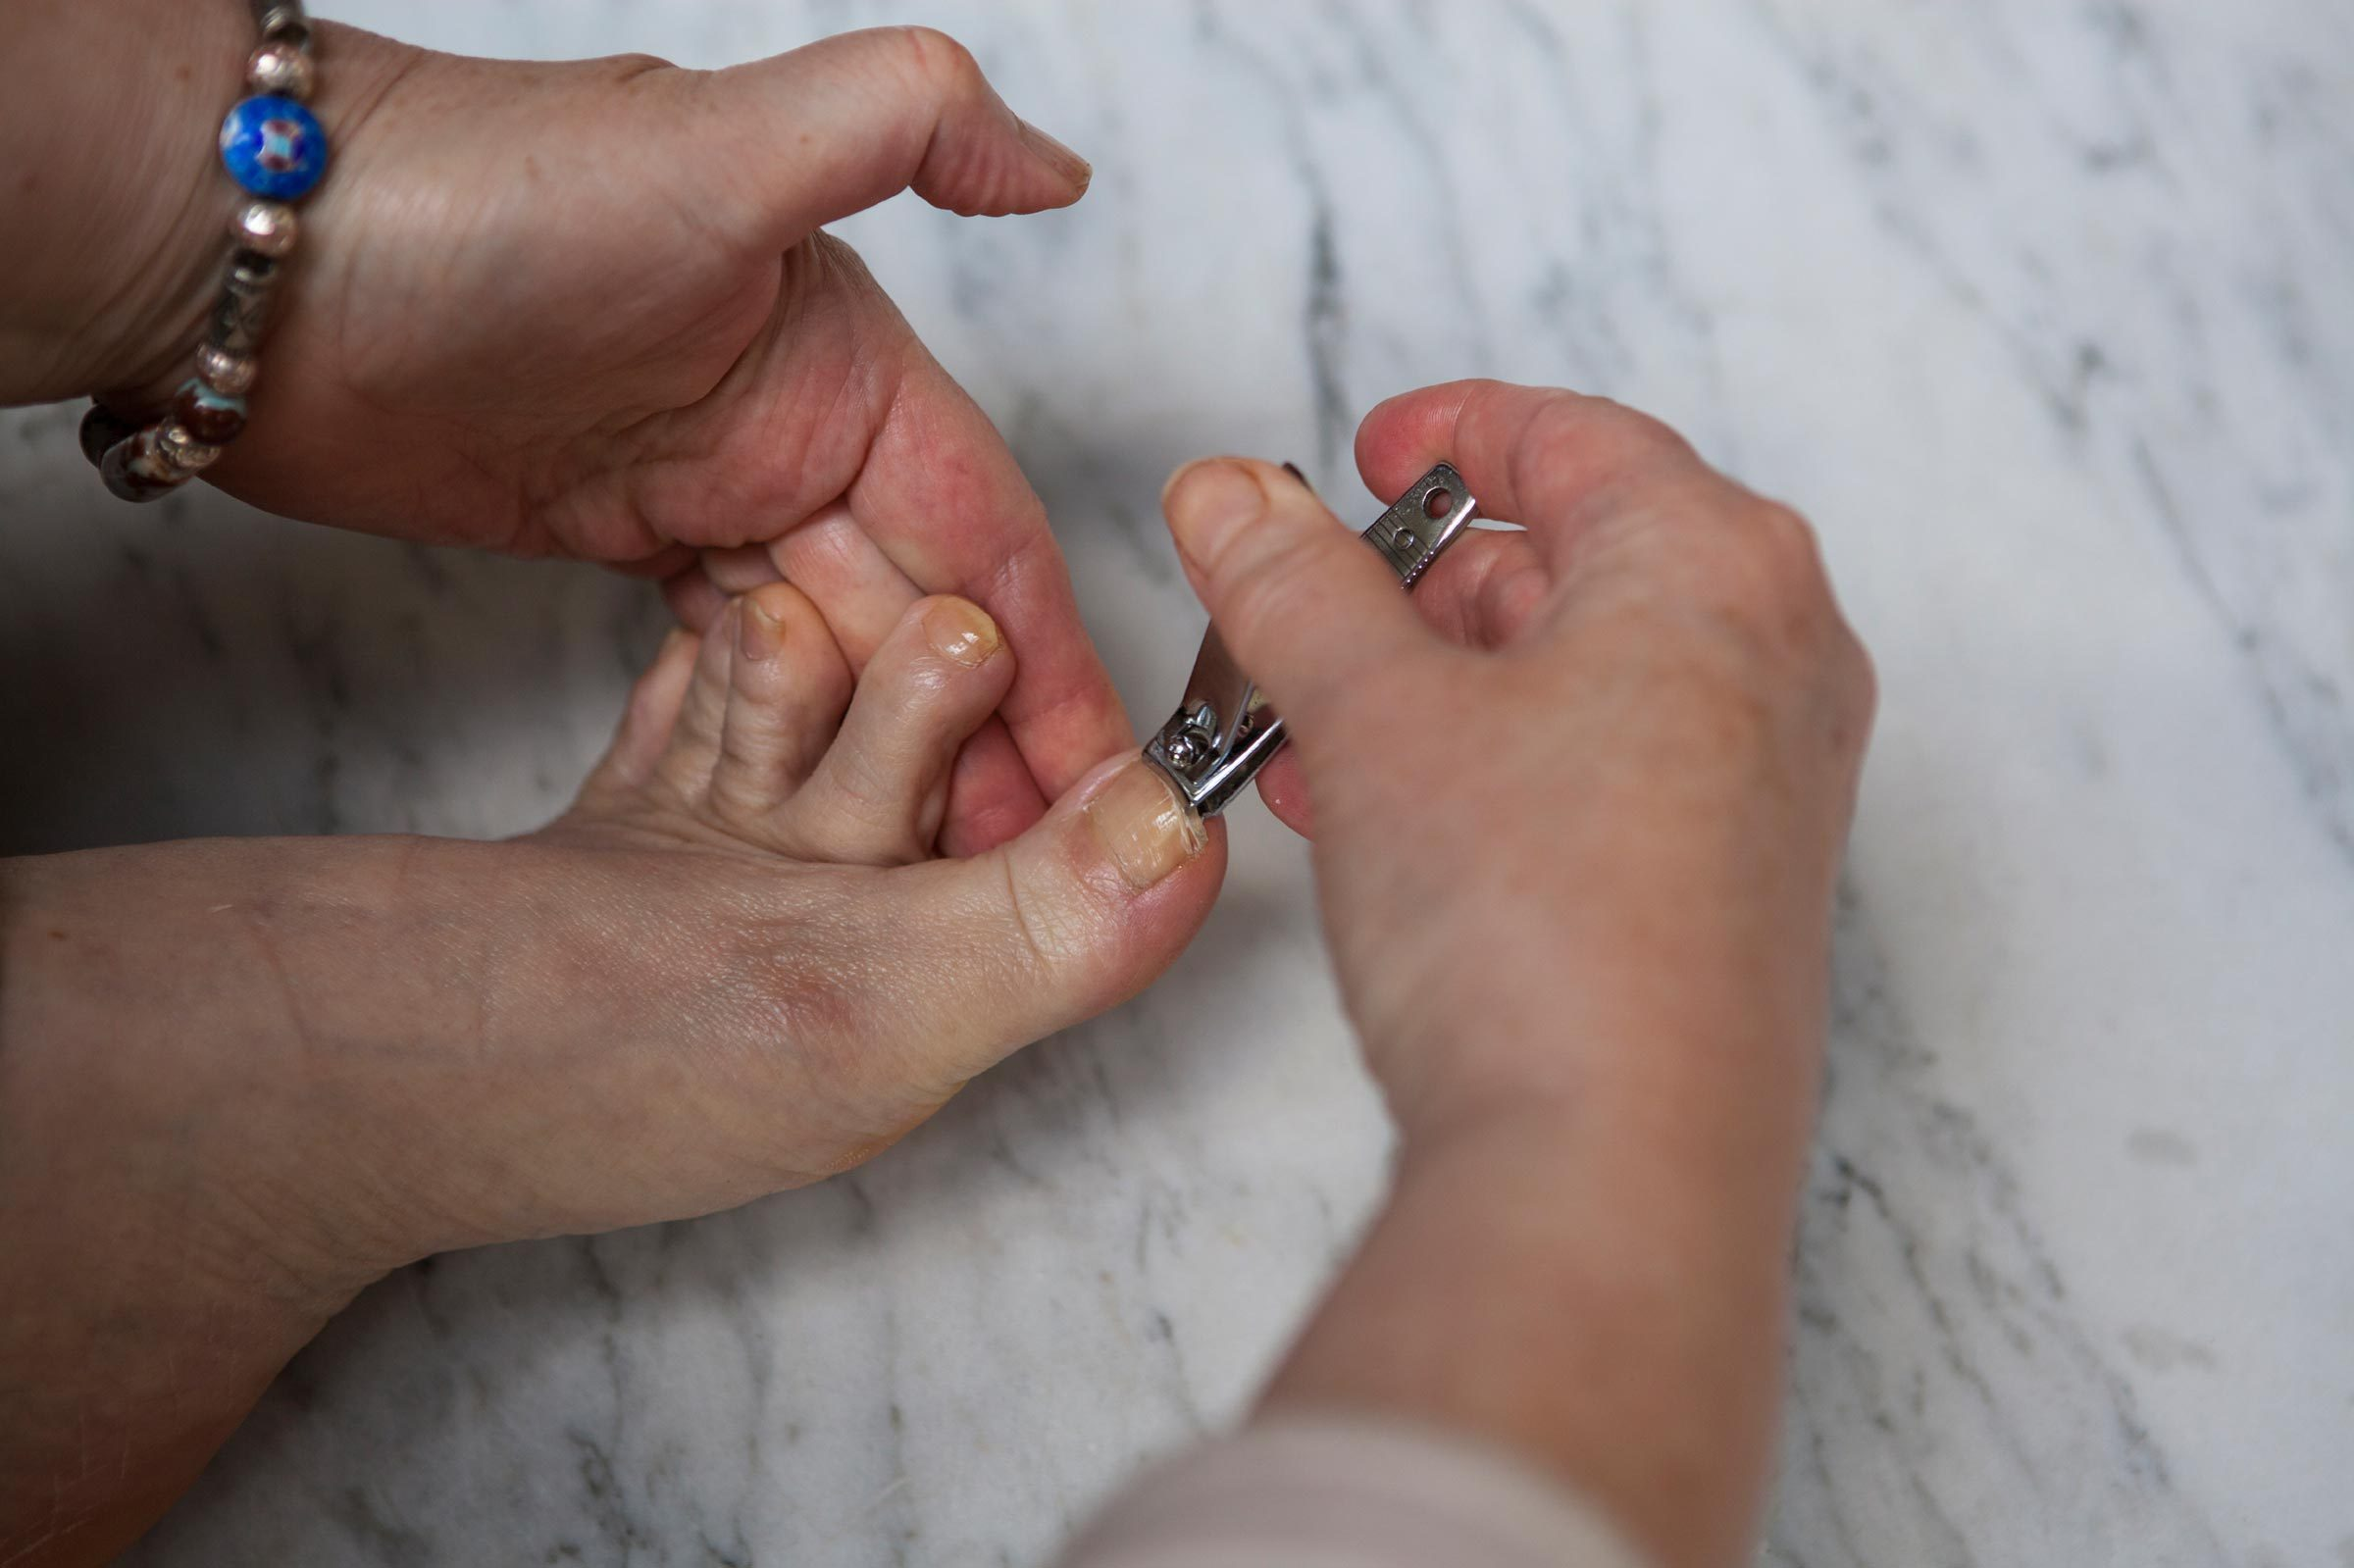 Can you: Trim your toenails standing up—without any discomfort from the bending?